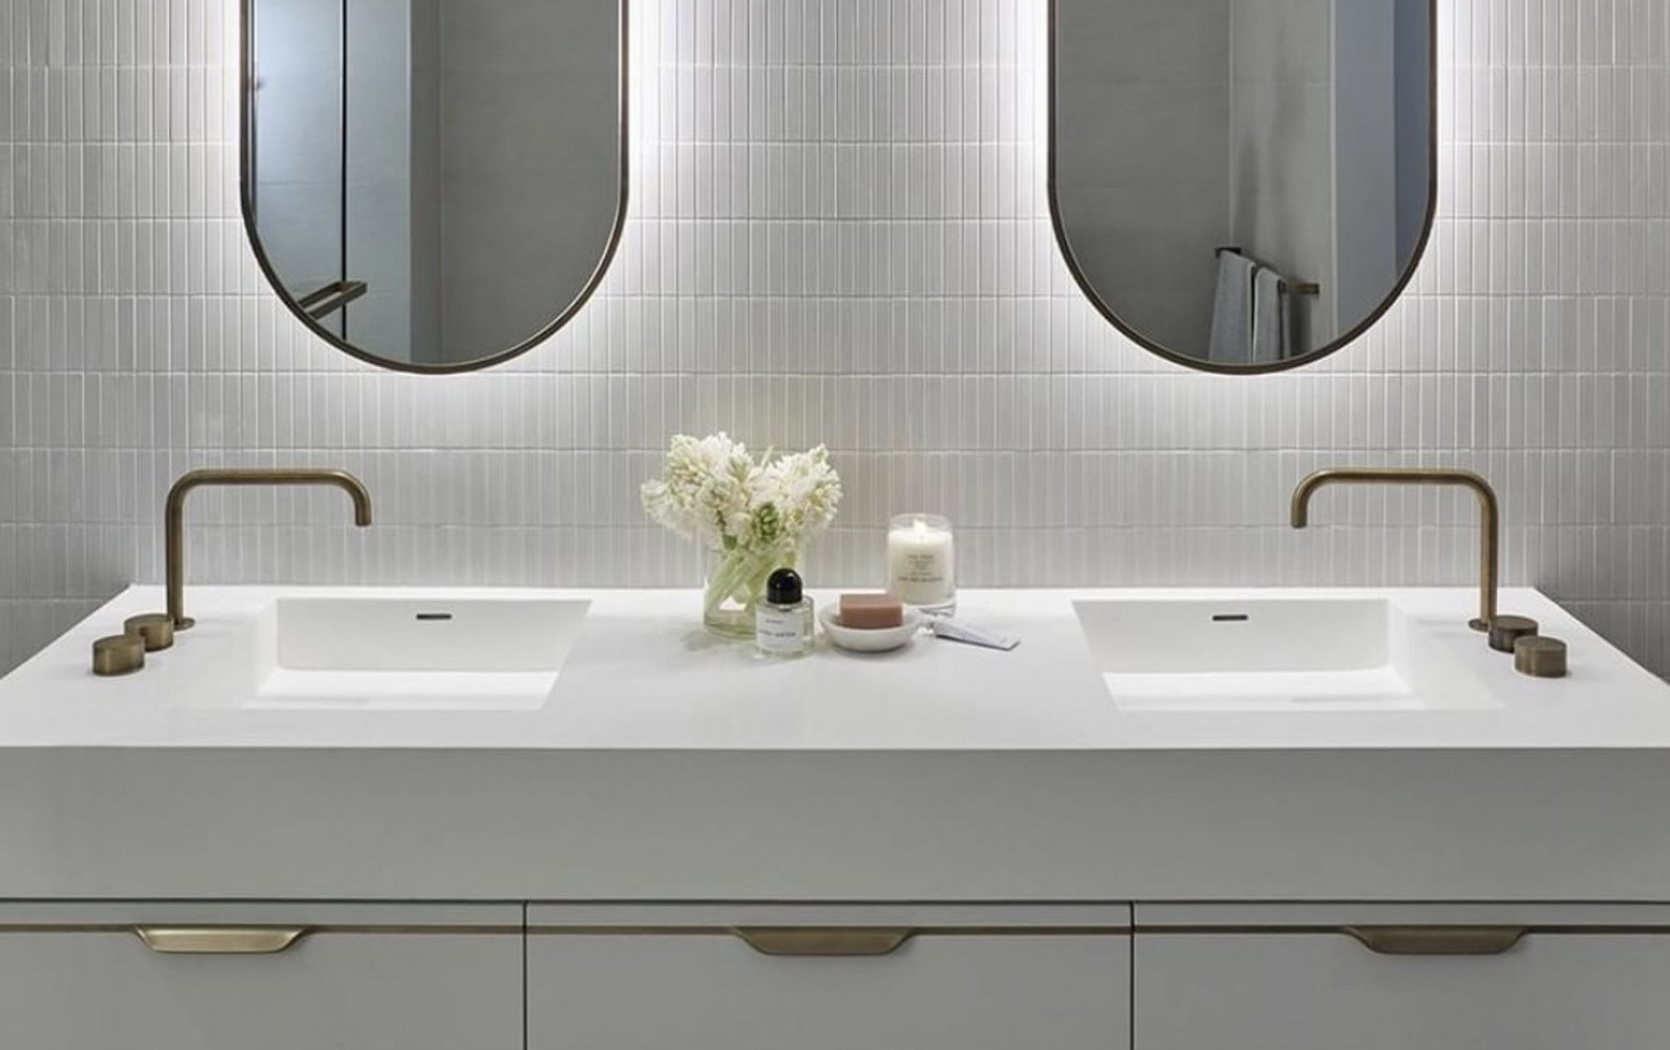 Side-mounted faucets in a bathroom by Apaiser Bathware